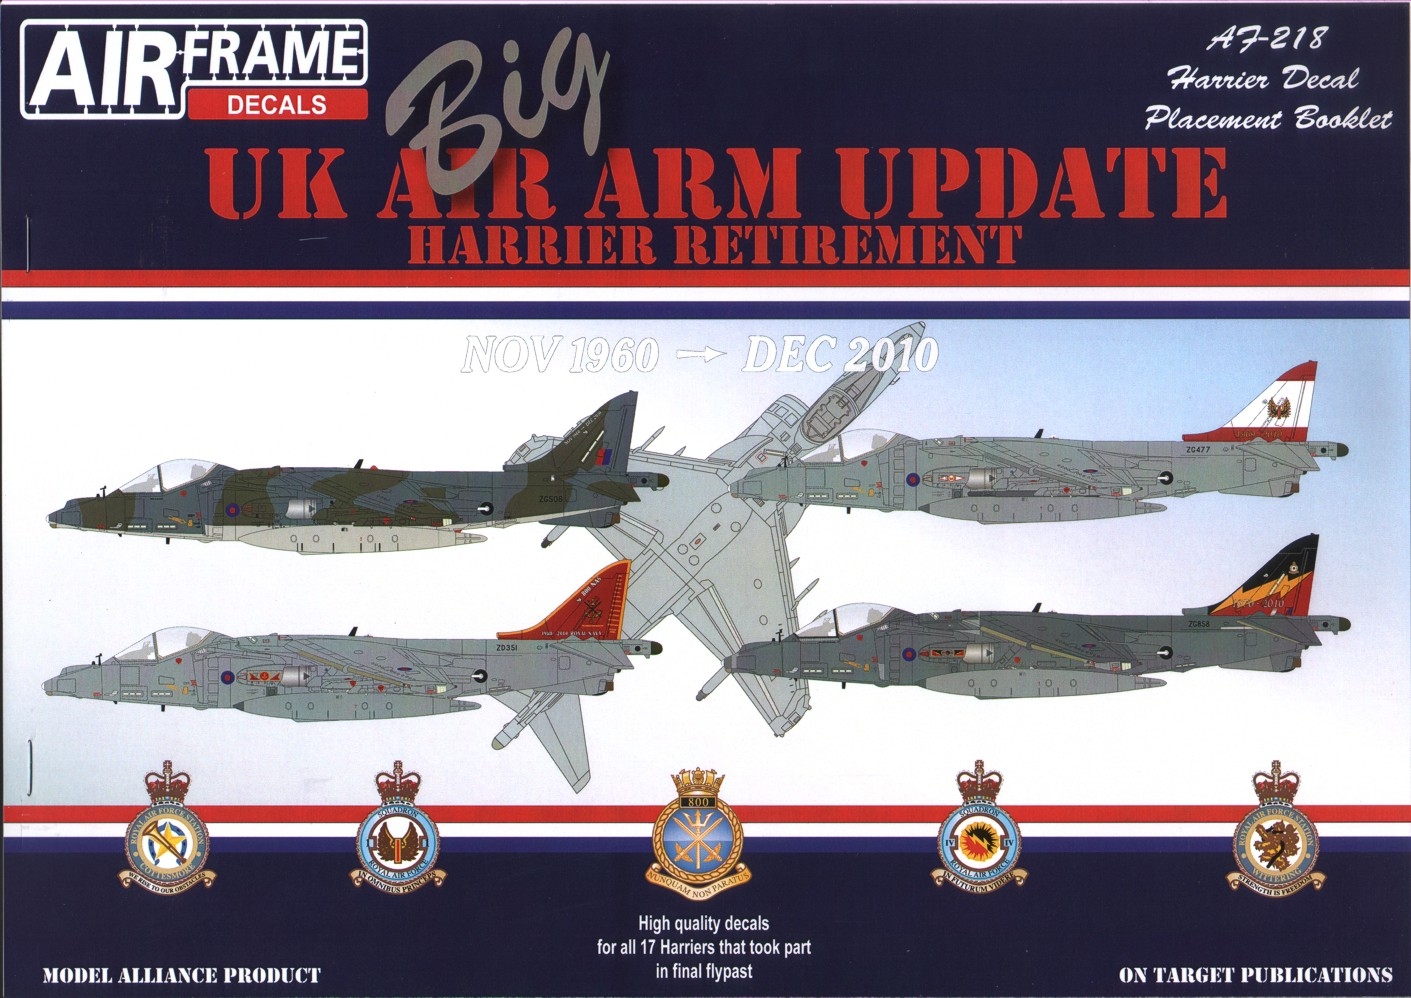 32218 UK Air Arm Update - Harrier Retirement